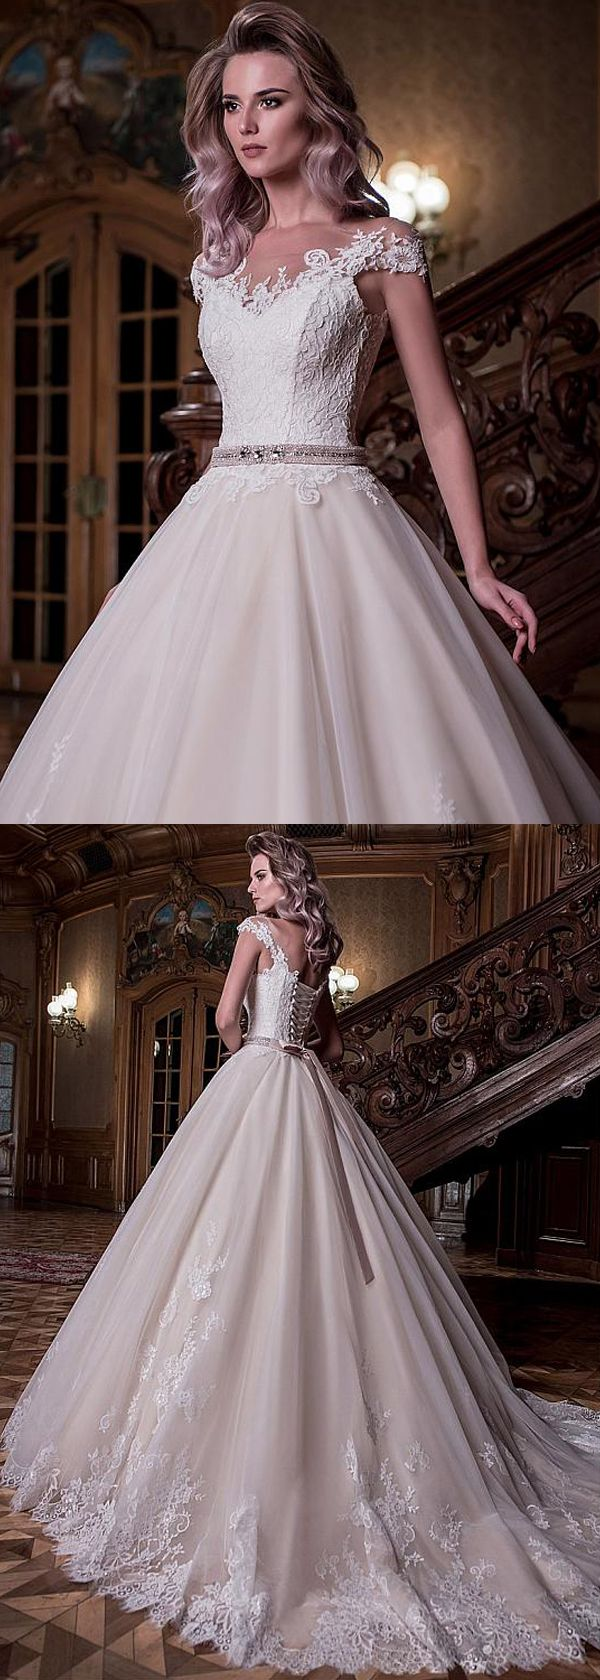 Junoesque Tulle Scoop Neckline Natural Waistline Ball Gown Wedding Dress With Lace Appliques & Belt